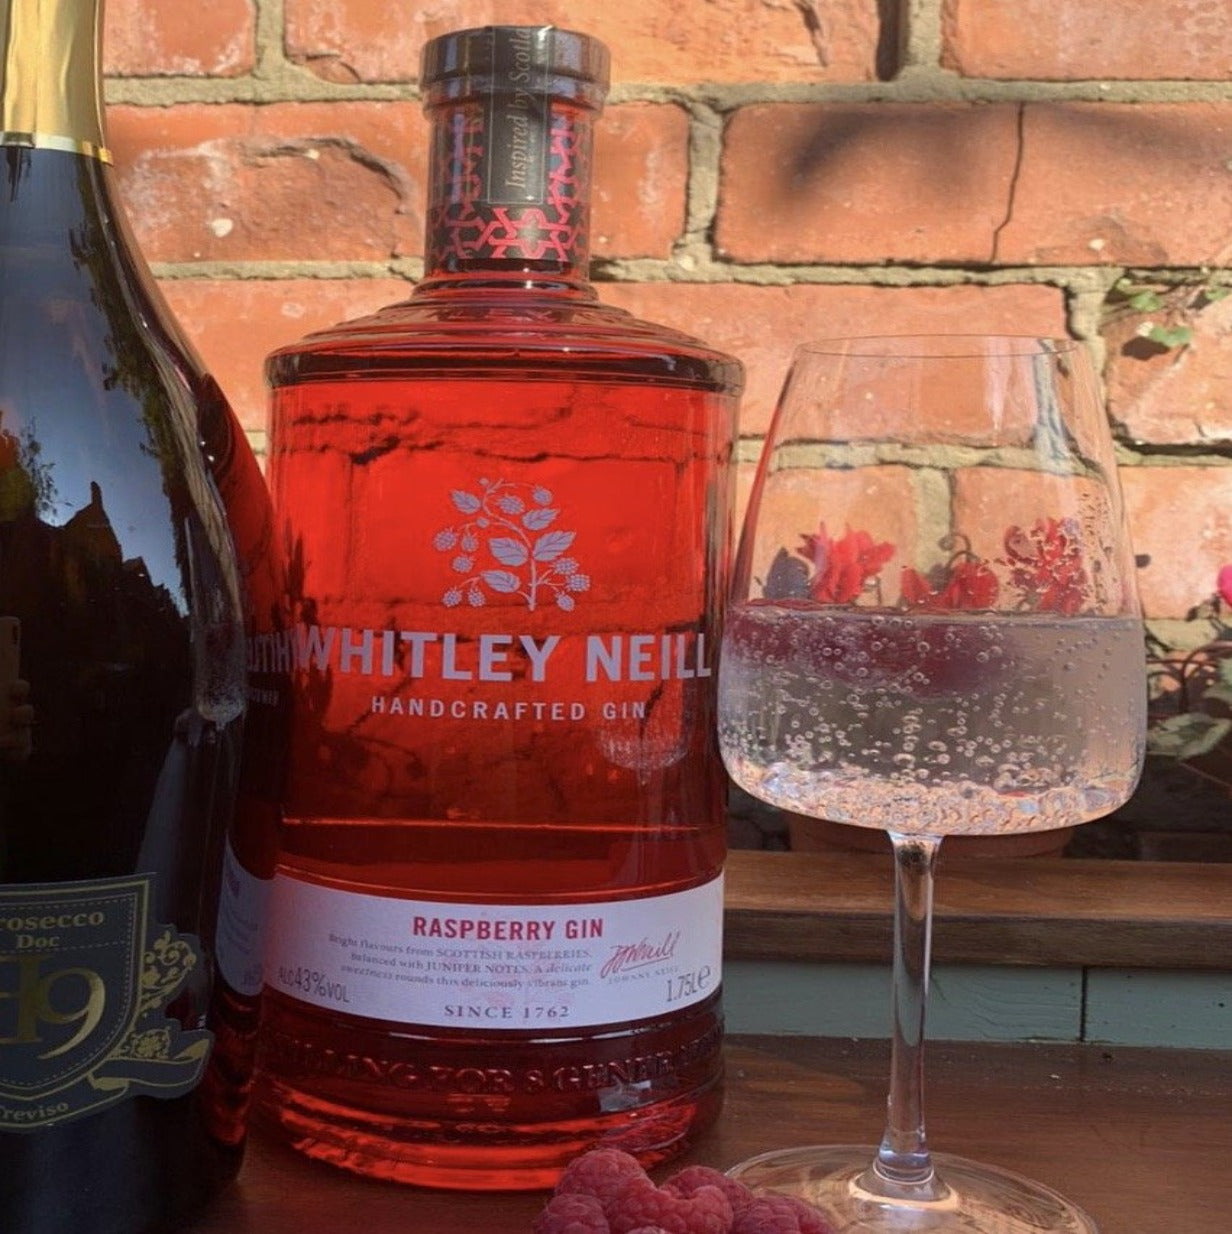 hawkshead Brewery - WHITLEY NEILL RASPBERRY GIN EXTRA LARGE 1.75 LITRE